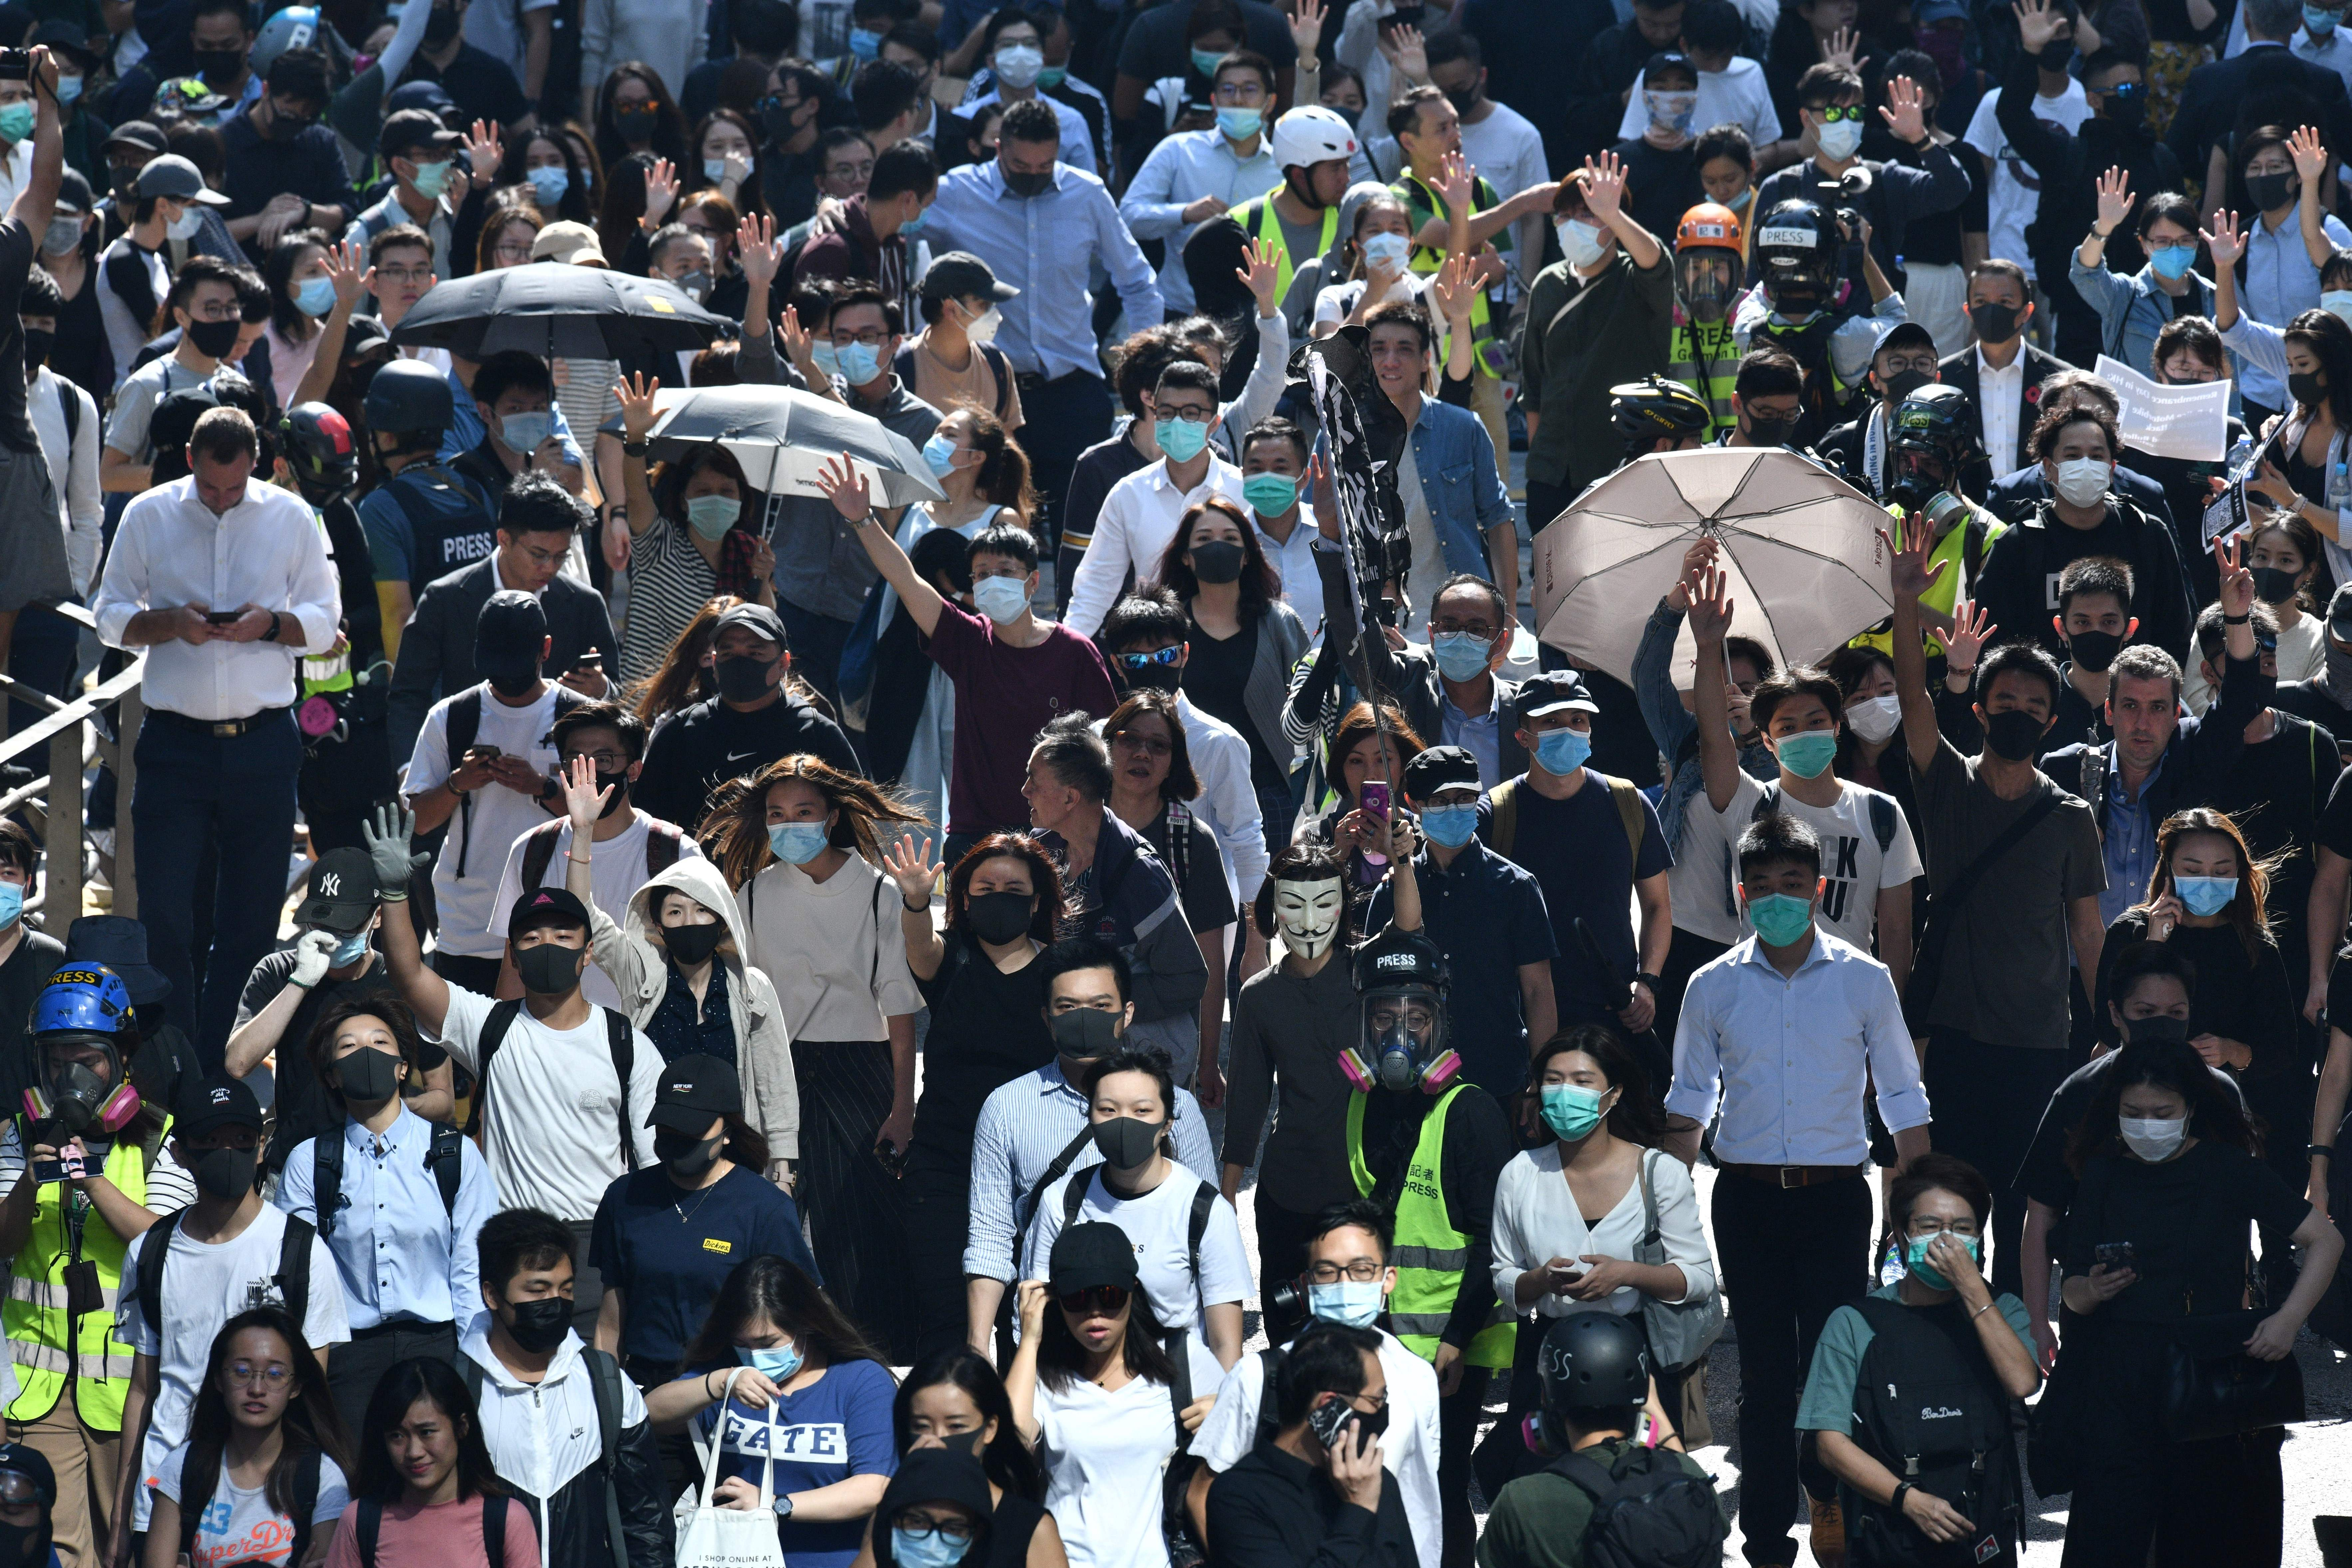 Demonstrators march in Hong Kong's Central district on November 11, 2019.